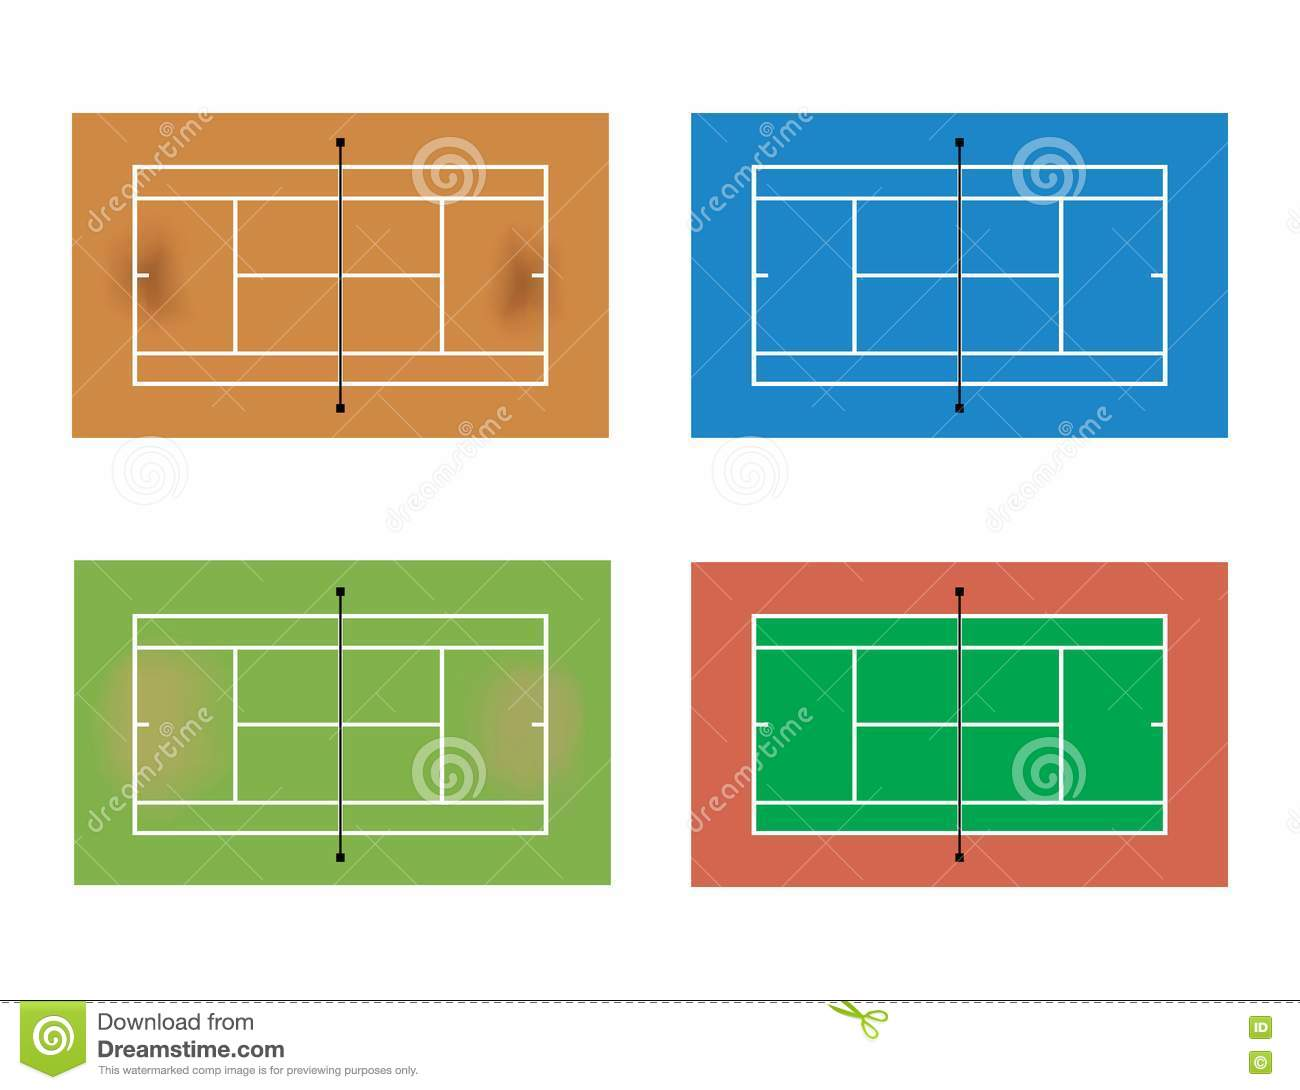 Tennis court stock images image 19672434